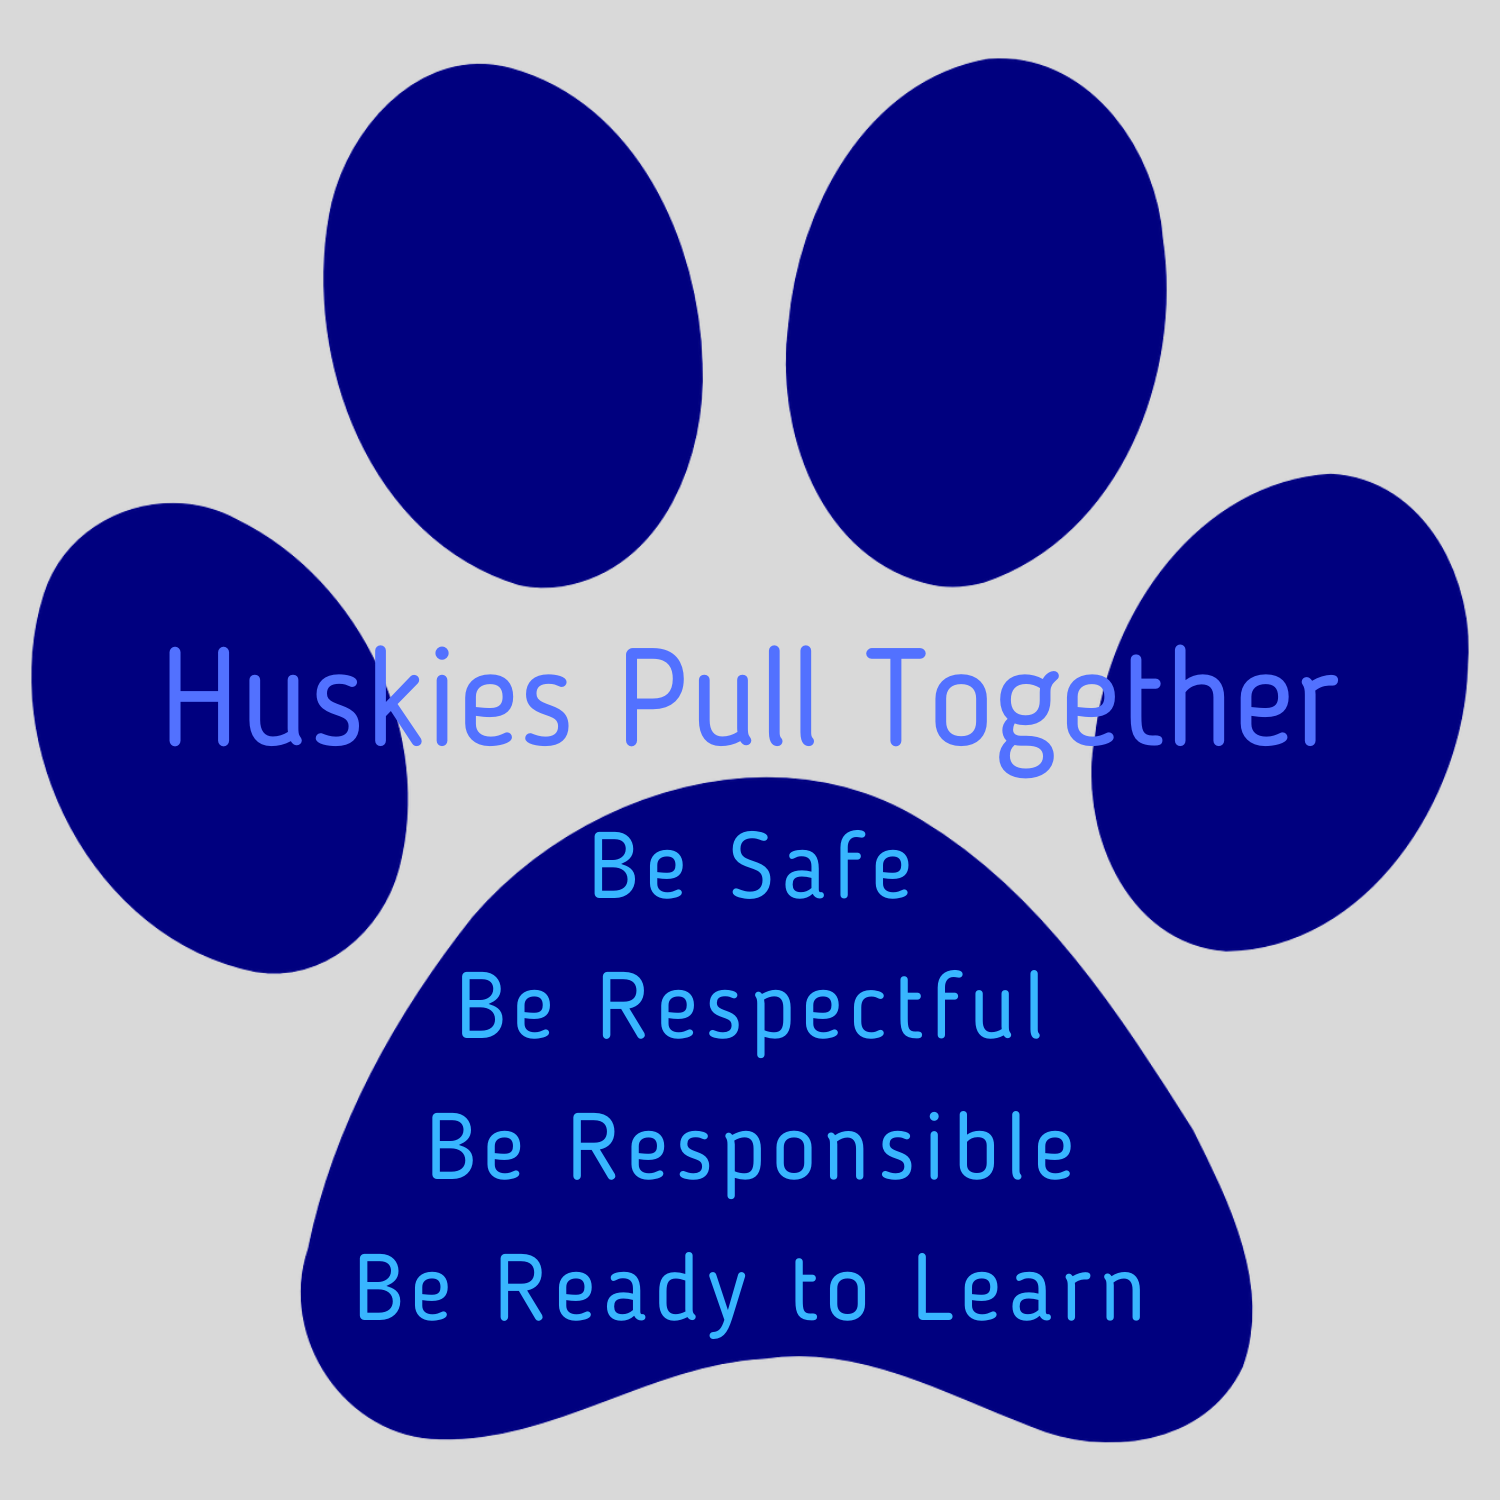 A husky paw showing huskies pull together. Be safe. Be respectful. Be responsible. Be ready to learn